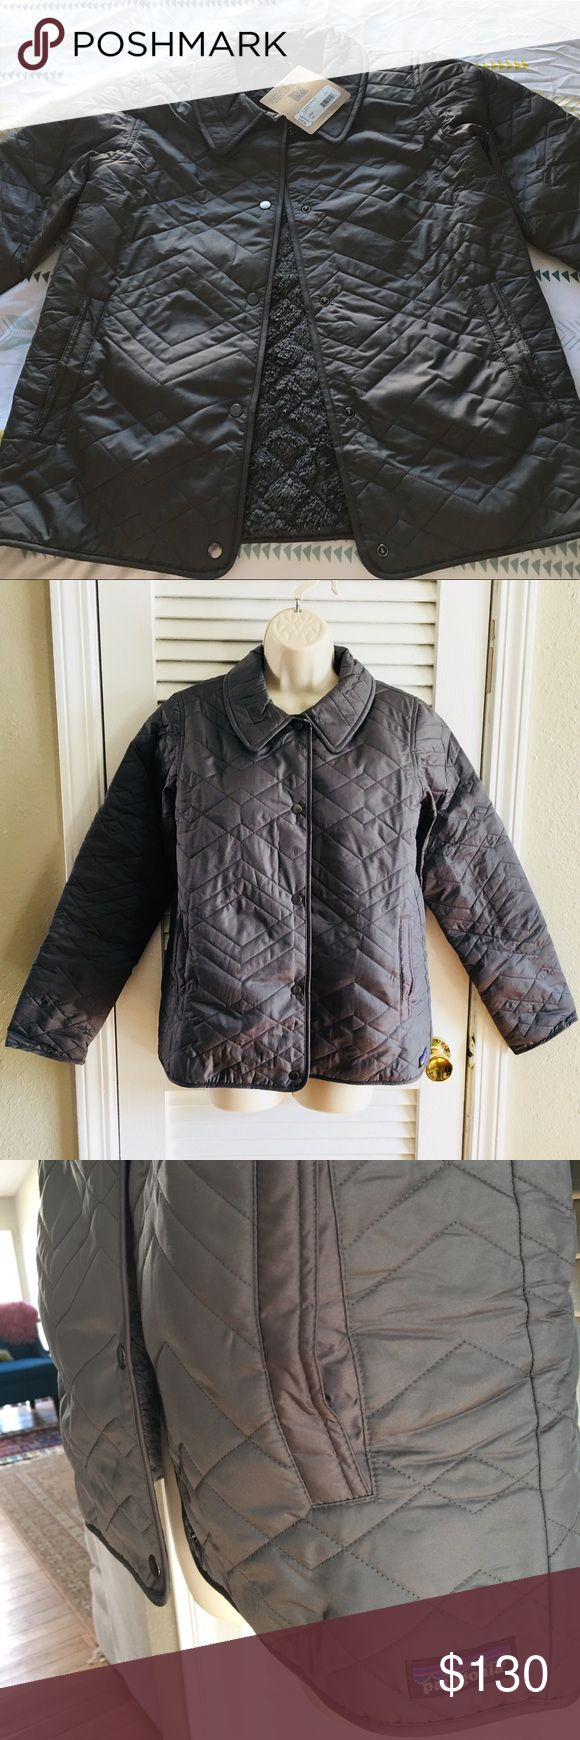 NWT Patagonia Women's Quilted Los Gatos Jacket A quilted taffeta jacket lined in 100% polyester fleece by Patagonia. Metal snap center front closure. Side entry hand warmer pockets. Sleeves are not lined with fleece in order to minimize bulk. NWT. Patagonia Jackets & Coats